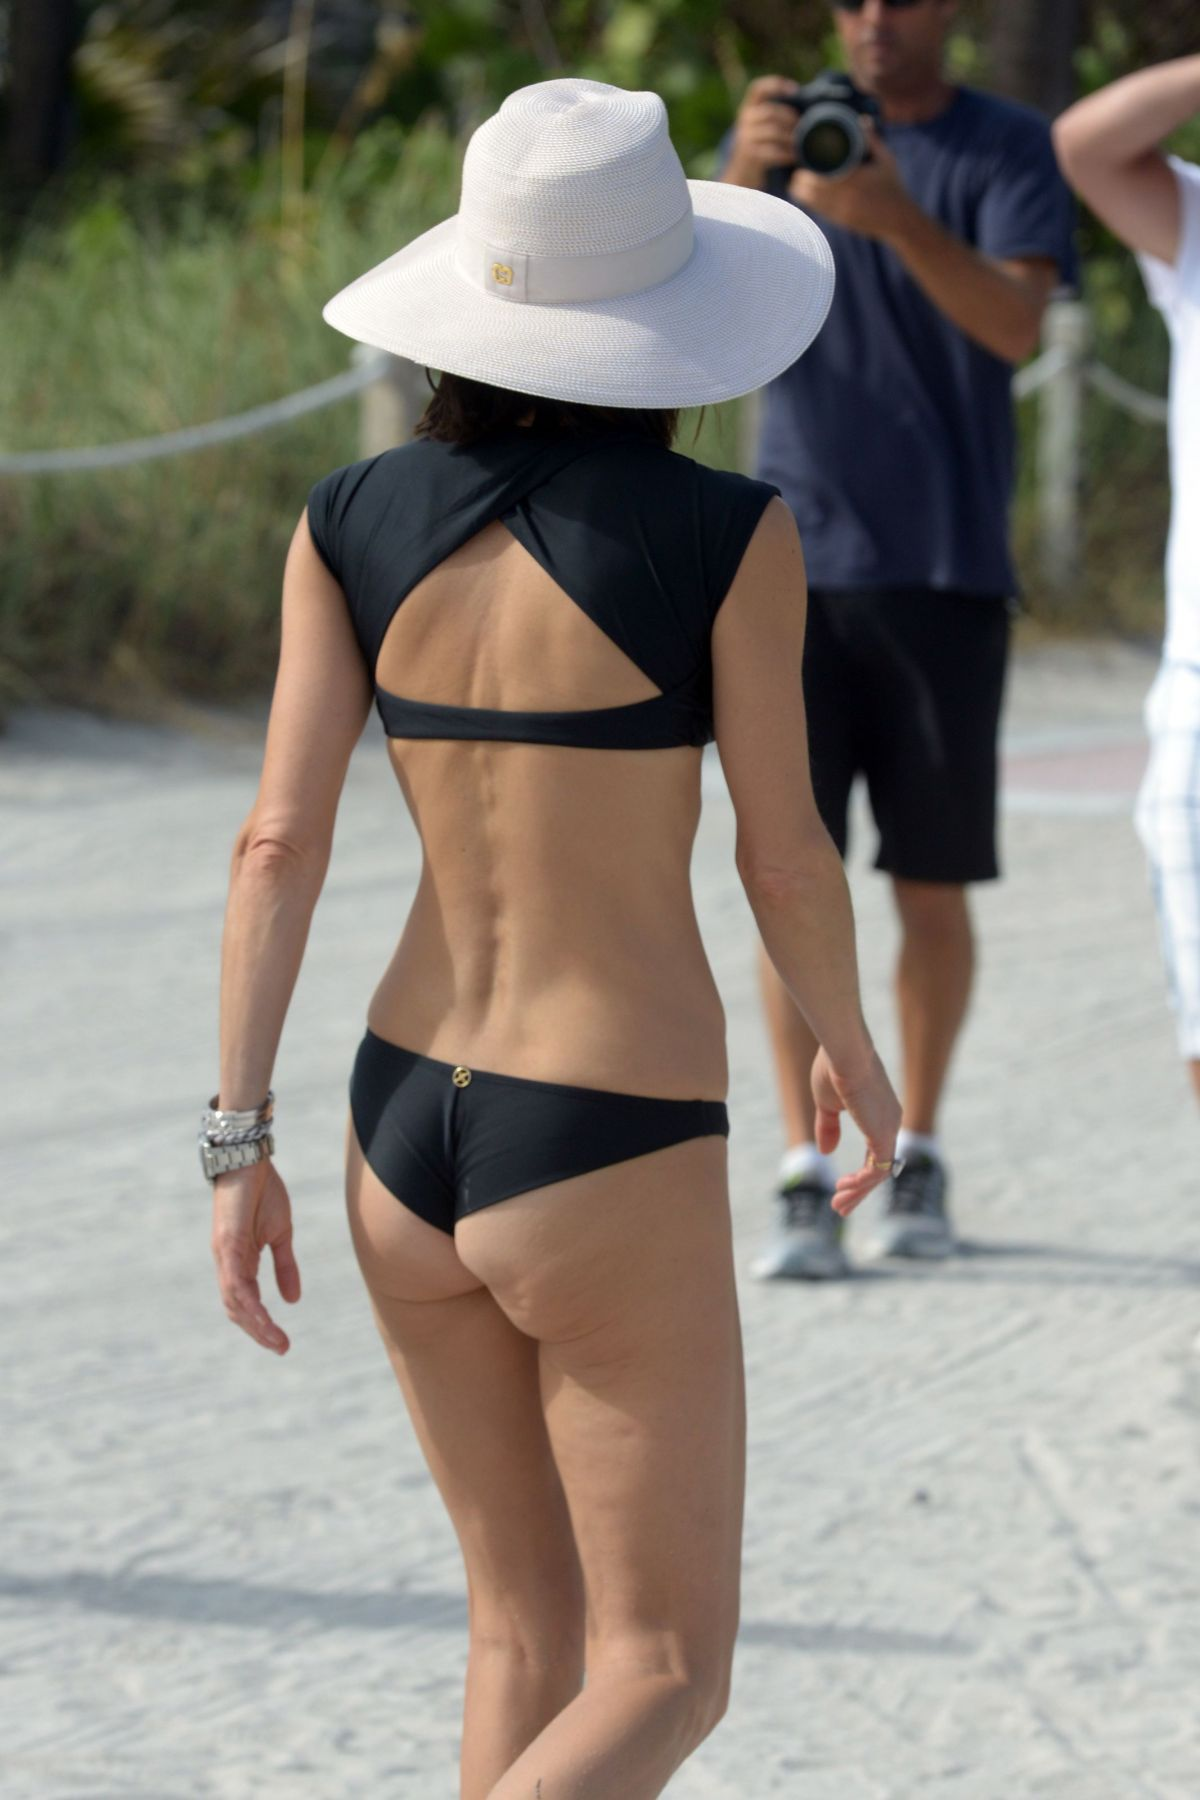 BETHENNY FRANKEL in Bikini on the Beach in Miami 12/05/2016   bethenny-frankel-in-bikini-on-the-beach-in-miami-12-05-2016_52